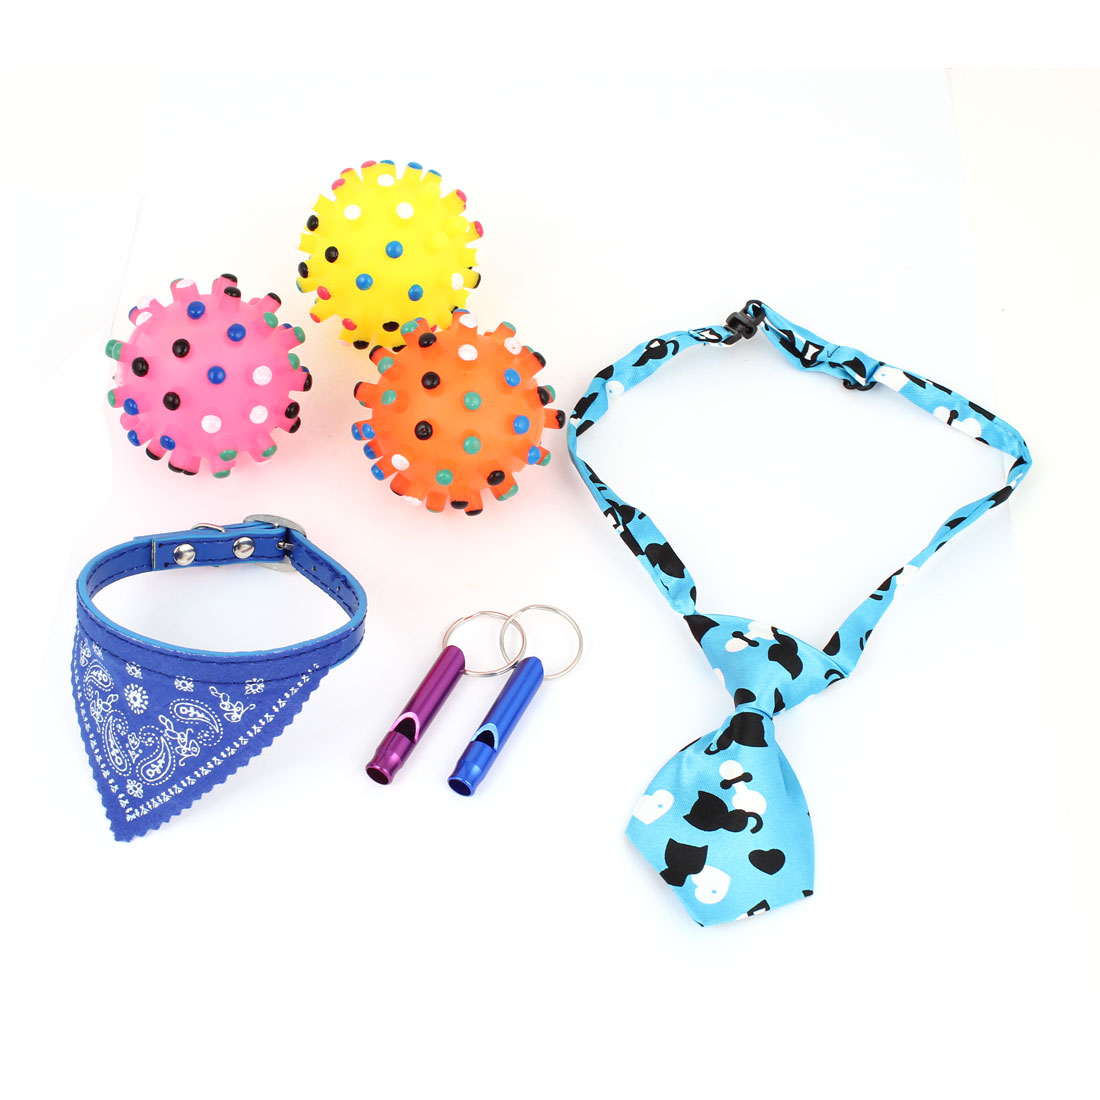 Whistle Necklace Tie Squeaky Chewing Toy 7 in 1 Set for Pet Dog Doggy